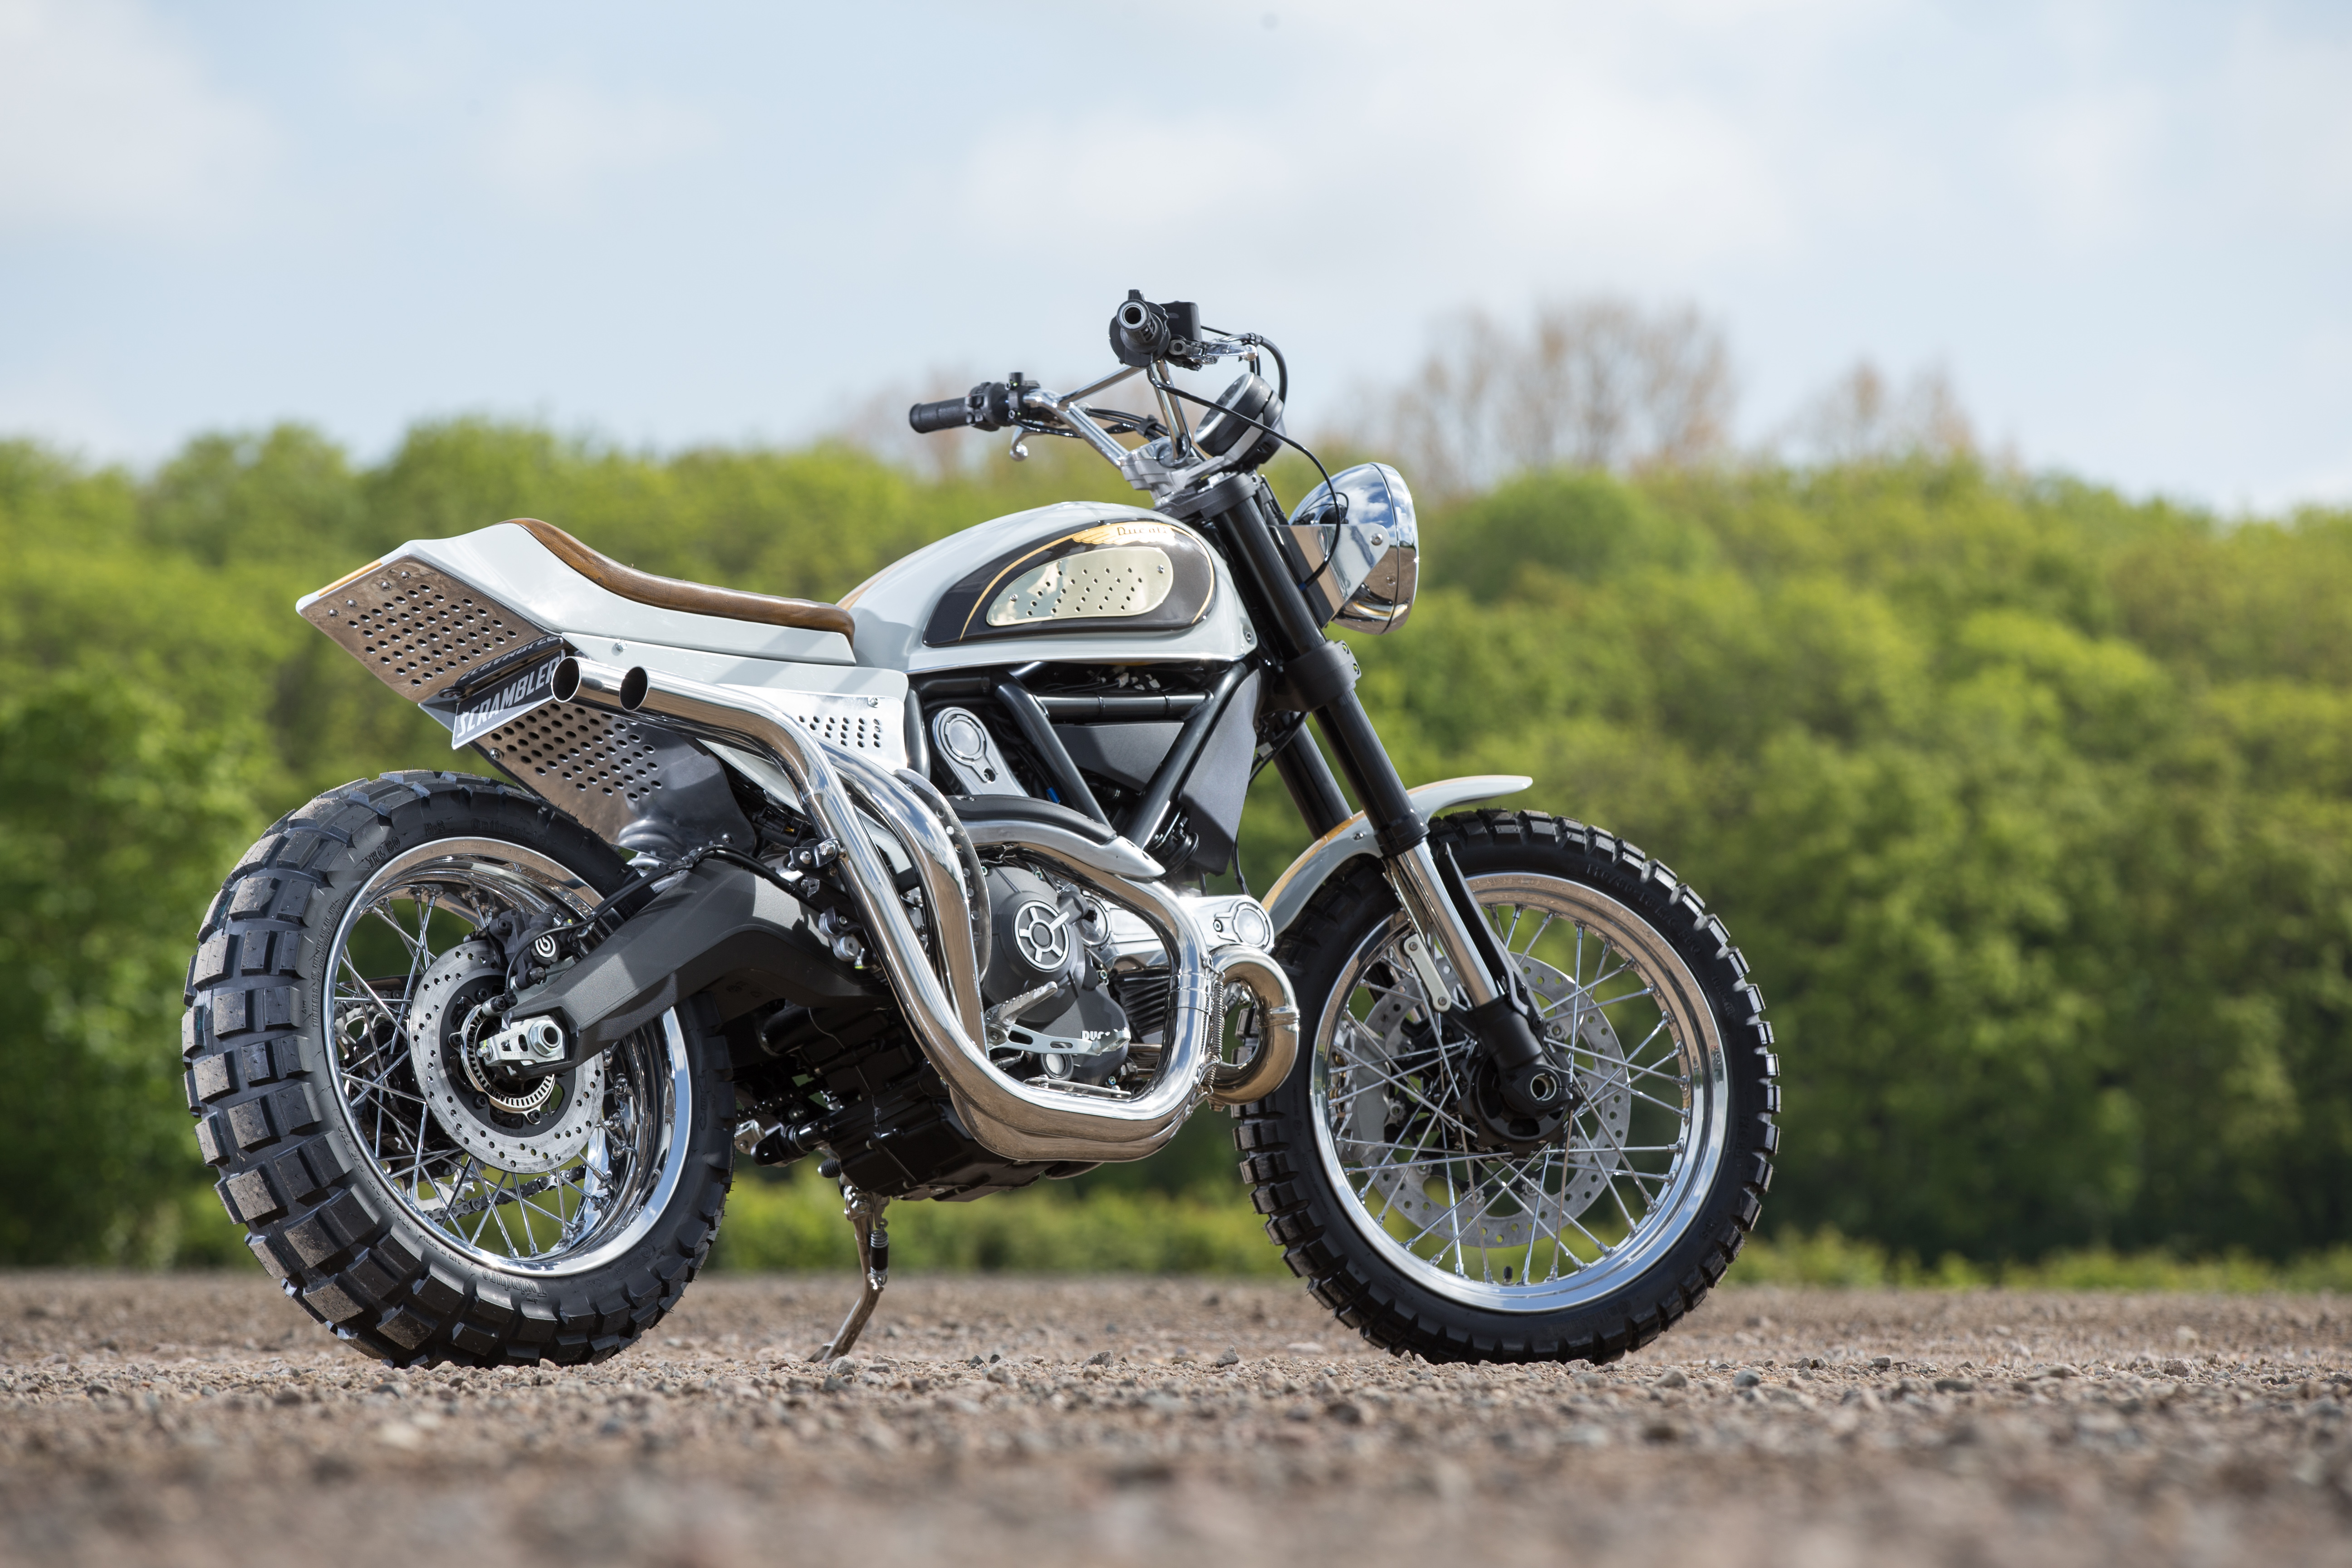 Bike Modified Parts >> Ducati Store News | DMC 'Eccythump' Scrambler – Custom Scrambler